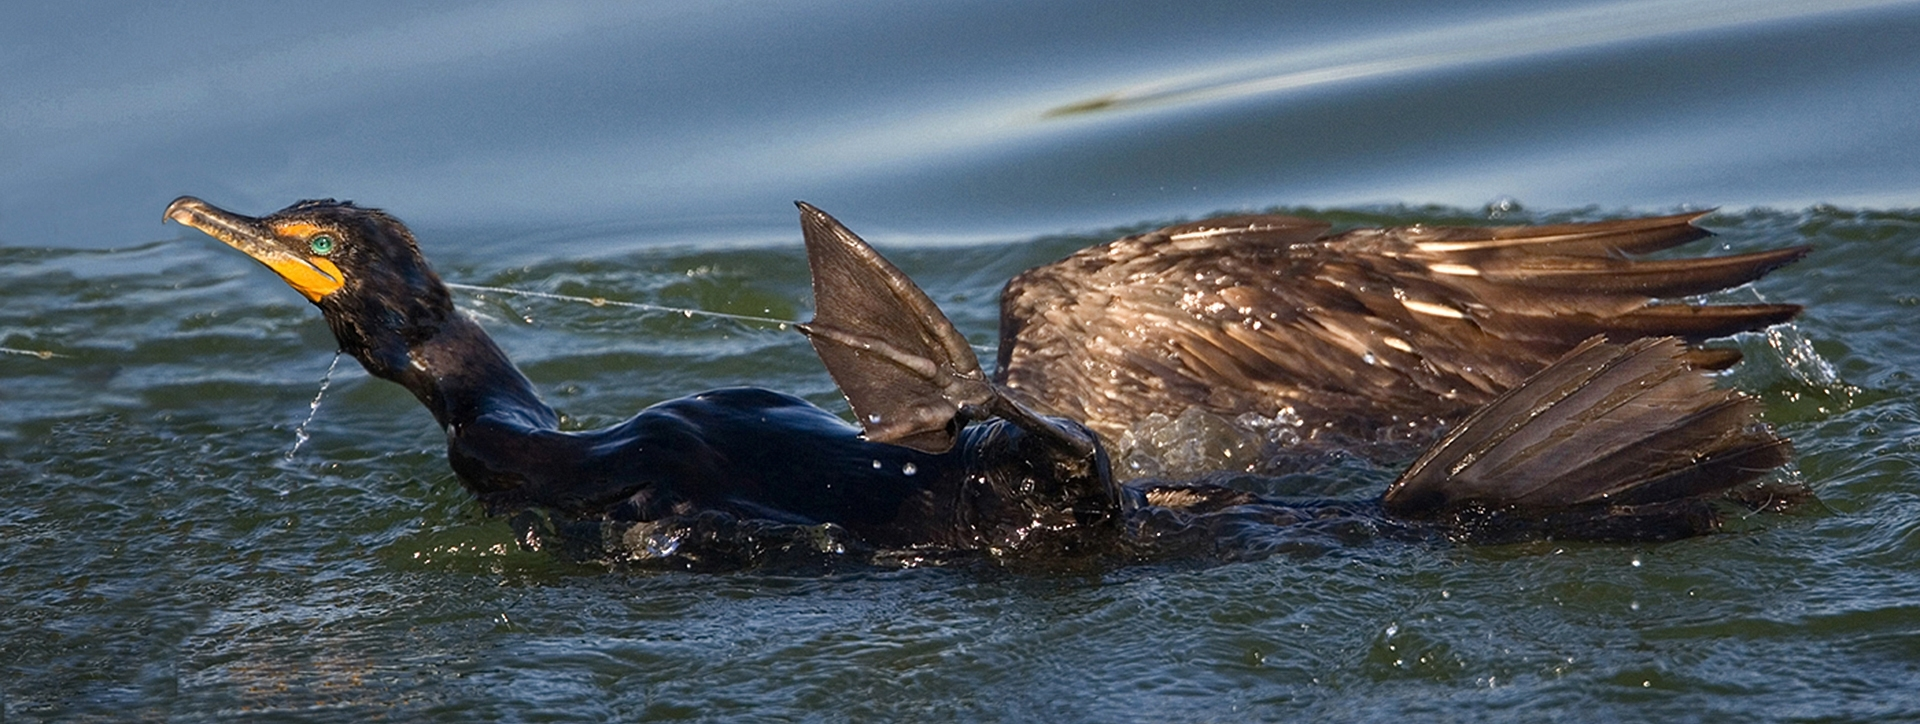 'Double Crested Cormaorant Faces Certain Death' (JA Best of Show) by Claudia Peterson - SC